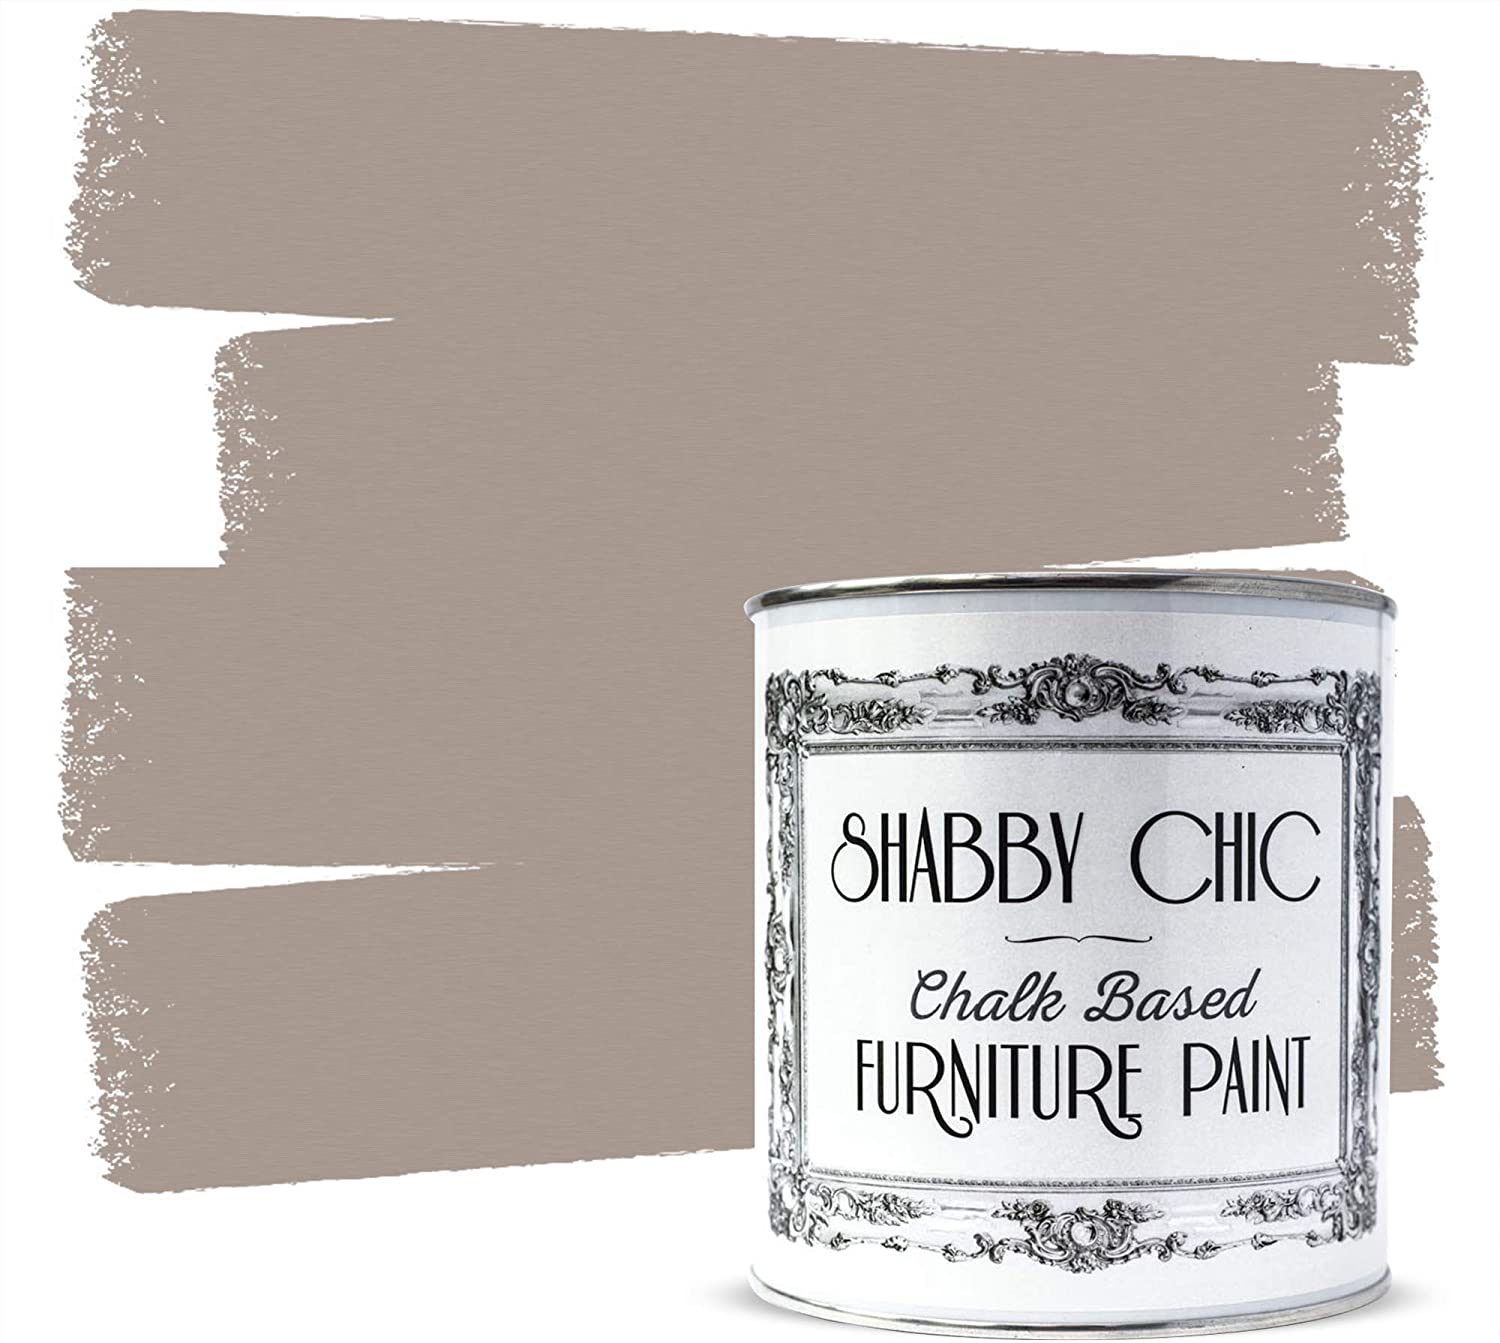 Shabby Chic Furniture Chalk Paint: Chalk Based Furniture and Craft Paint for Home Decor, DIY Projects, Wood Furniture - Chalked Interior Paints with Rustic Matte Finish - Liter - Latte